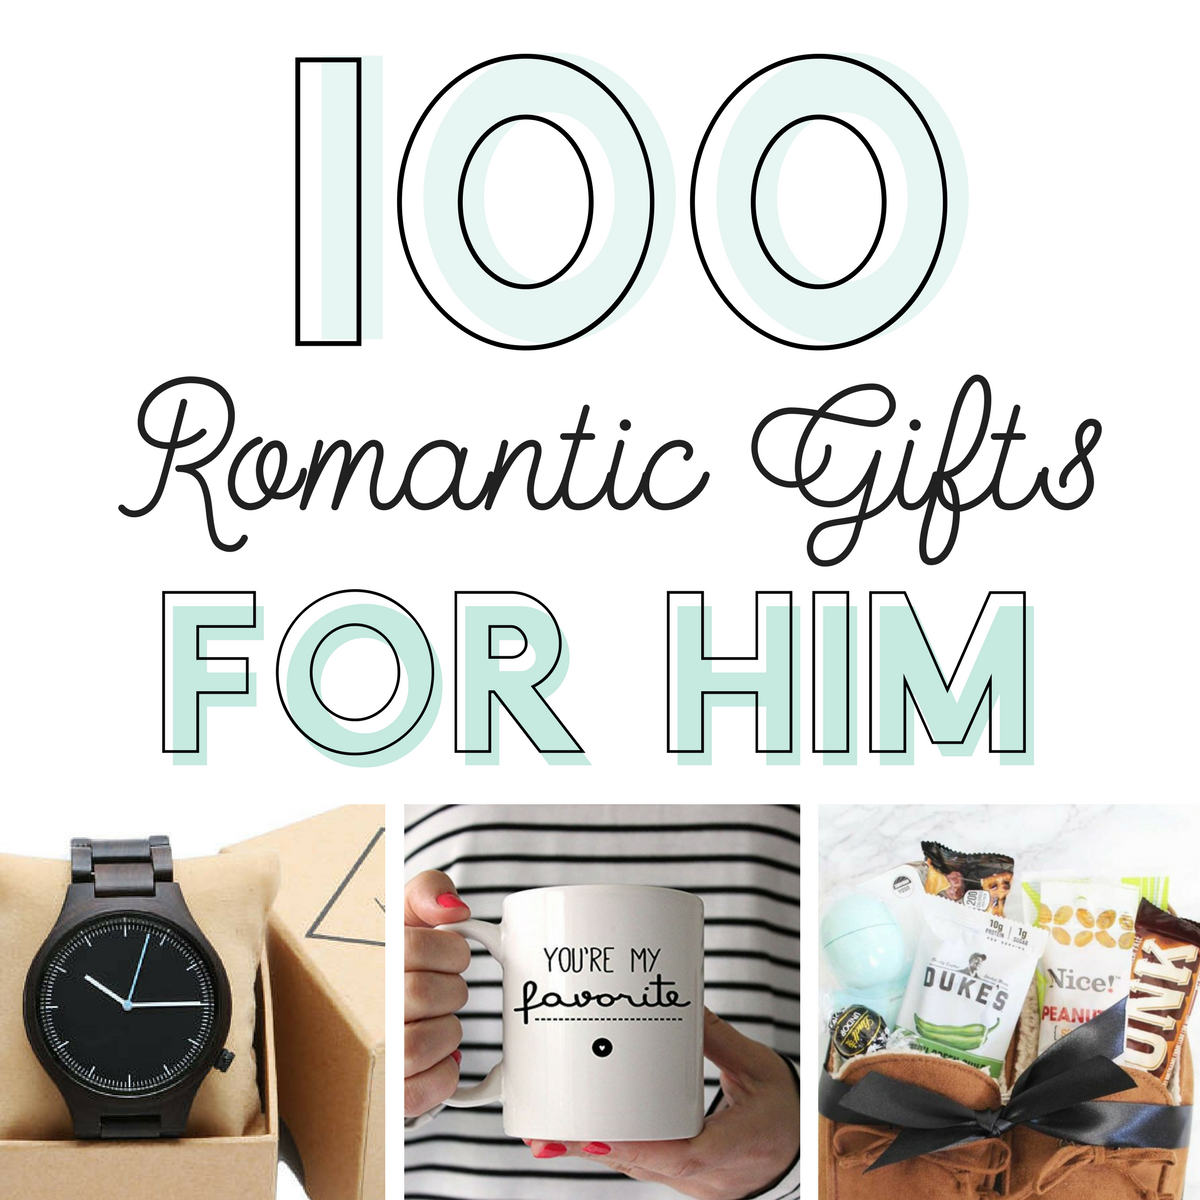 Diy Romantic Christmas Gifts: 100 Romantic Gifts For Him